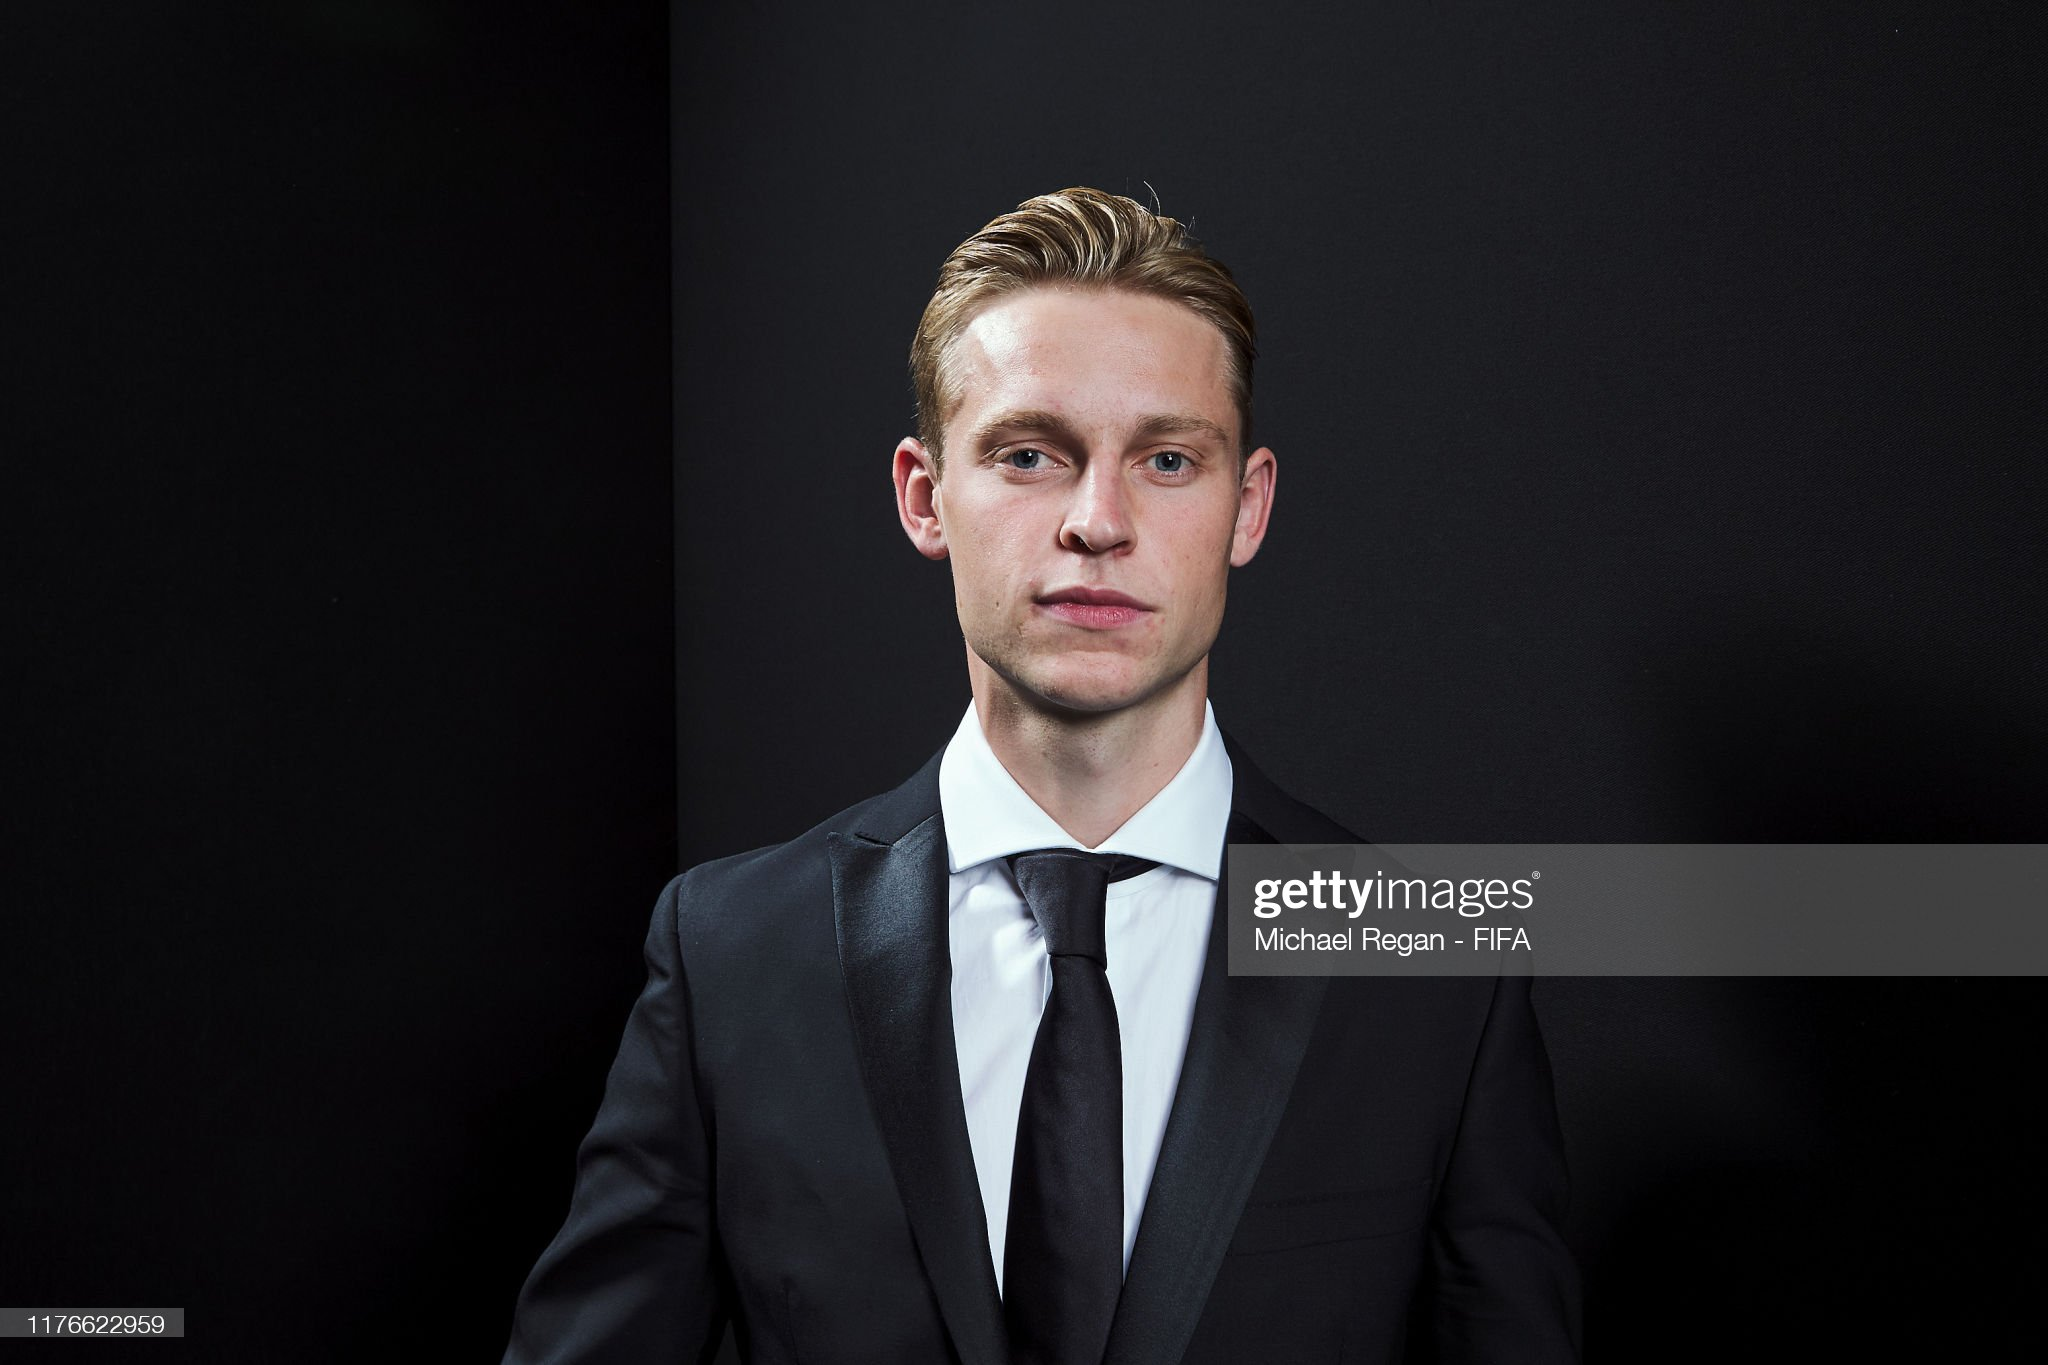 The Best FIFA Football Awards 2019 Fifpro-mens-world11-award-frenkie-de-jong-of-barcelona-and-netherland-picture-id1176622959?s=2048x2048